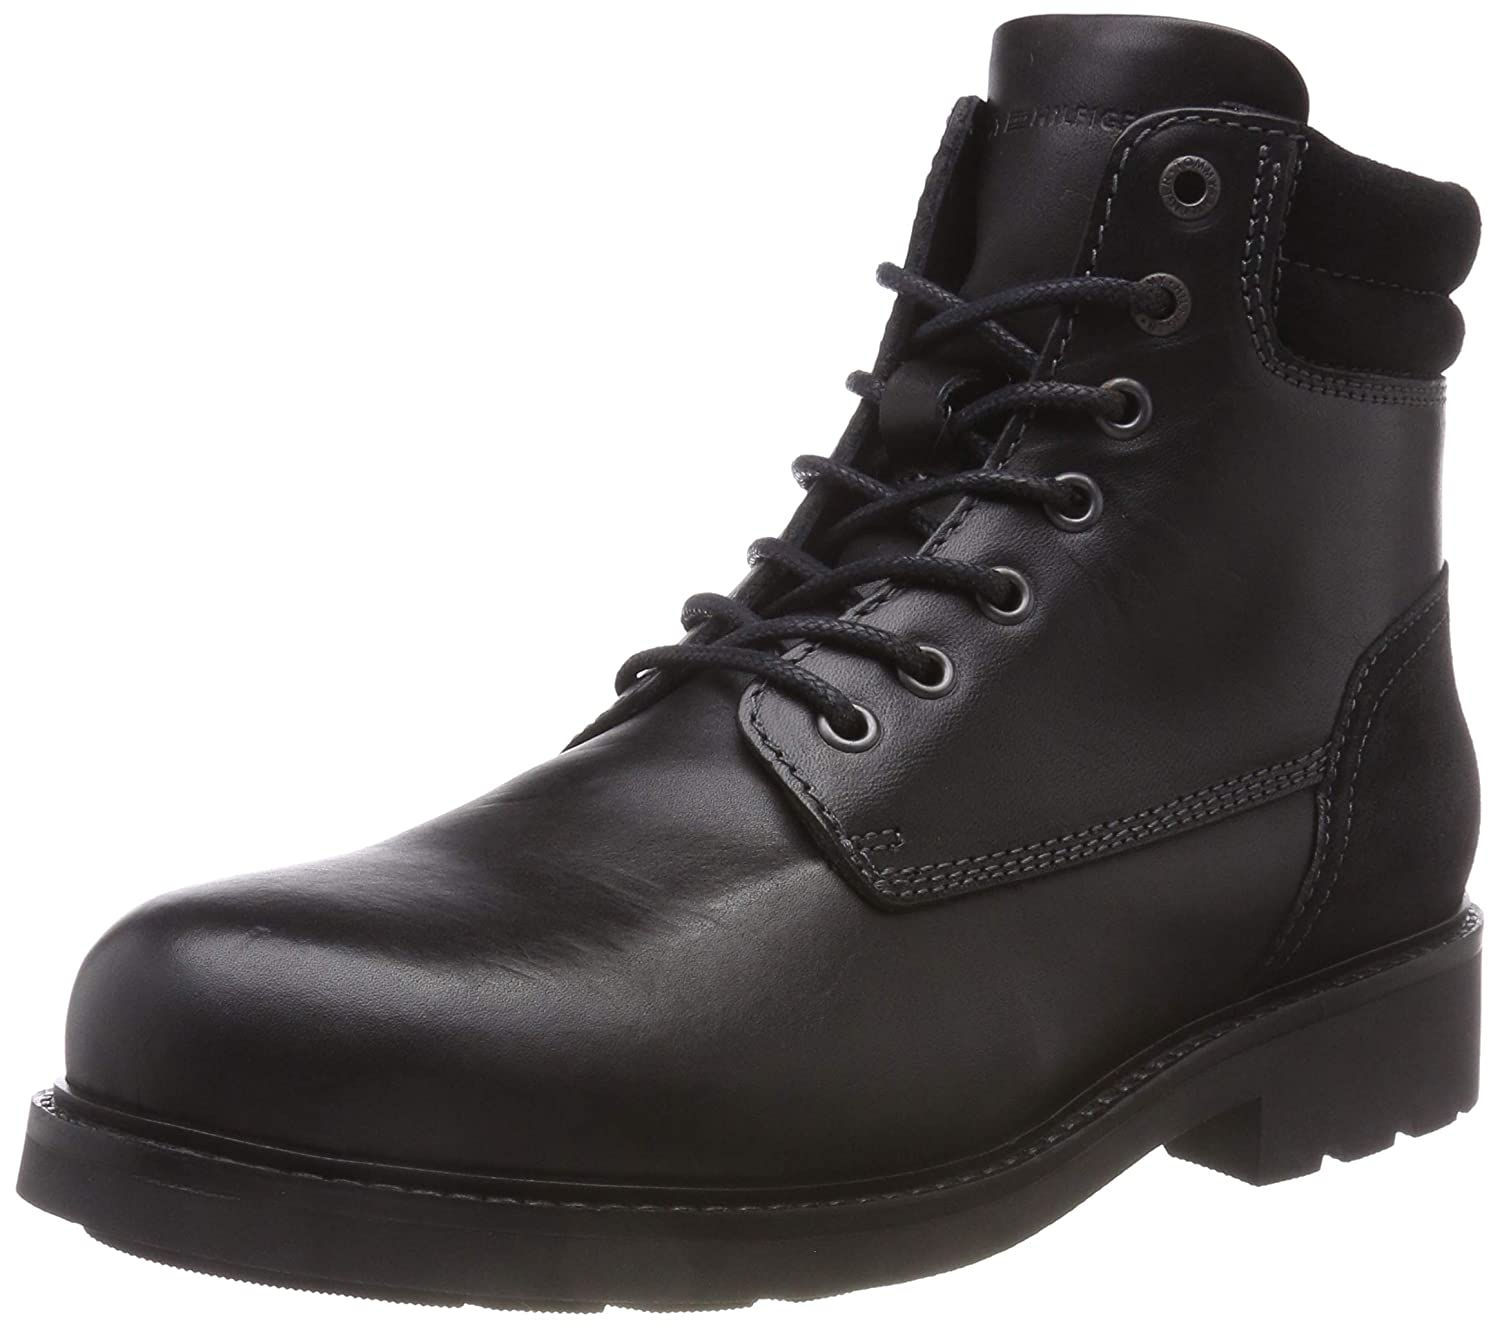 TALLA 44 EU. Tommy Hilfiger Active Leather Boot, Botas Militar para Hombre